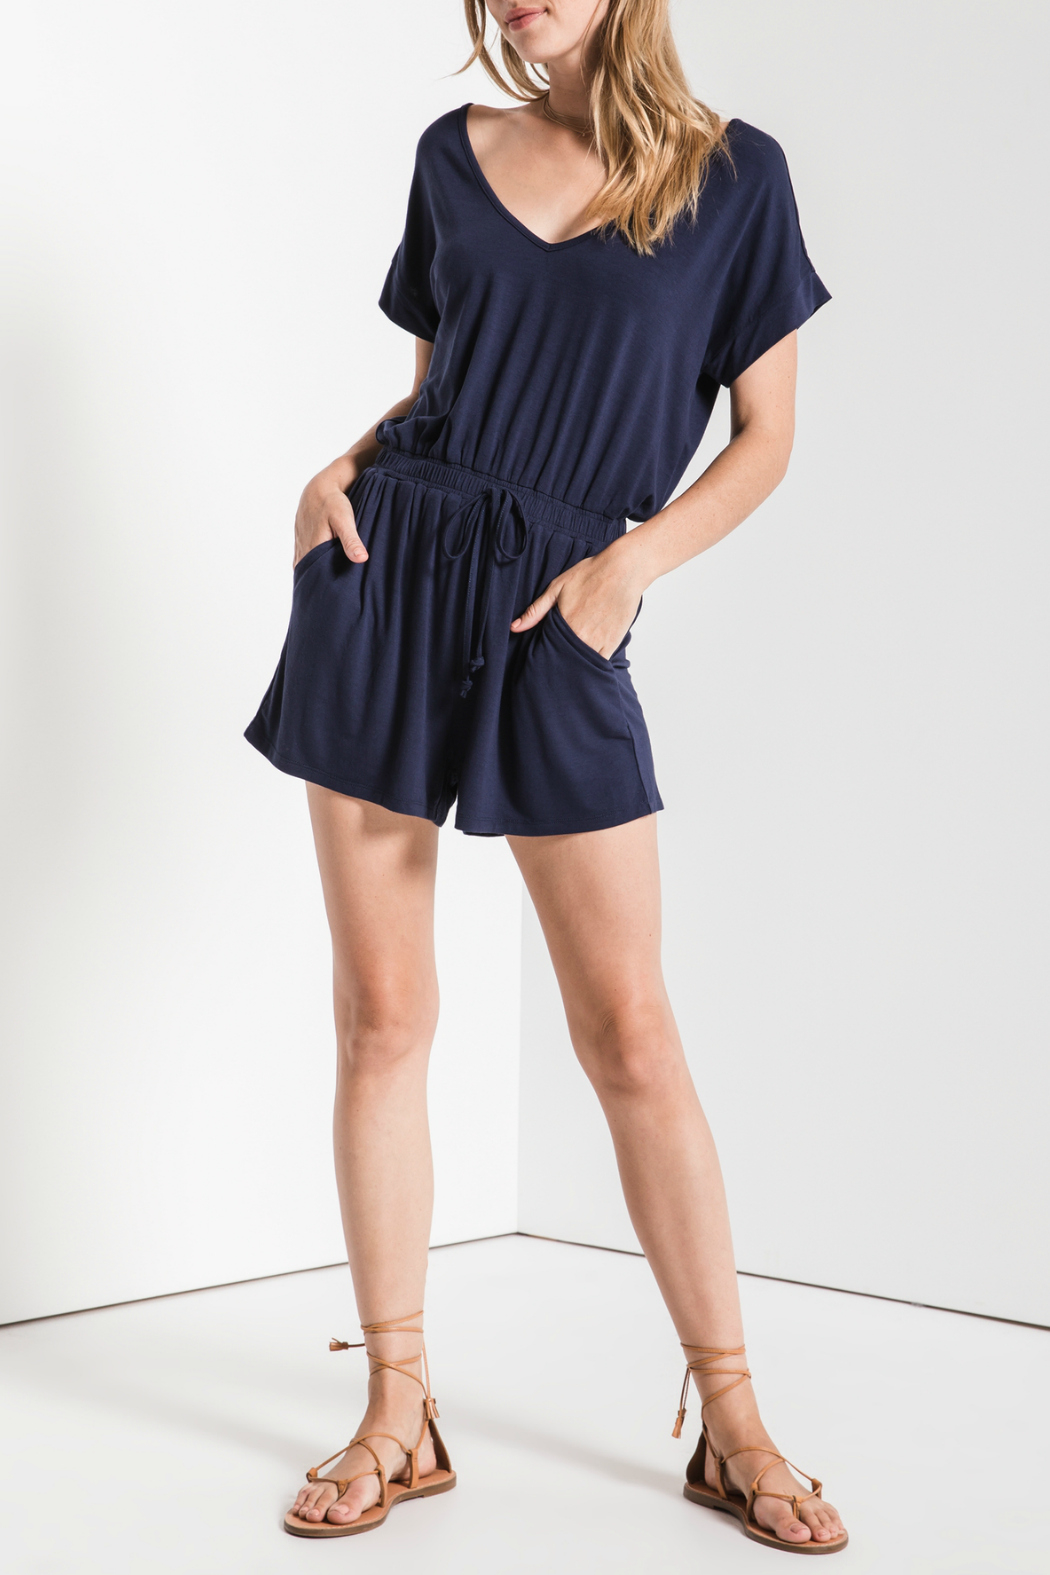 z supply Blaire Sleek Jersey Romper - Back Cropped Image